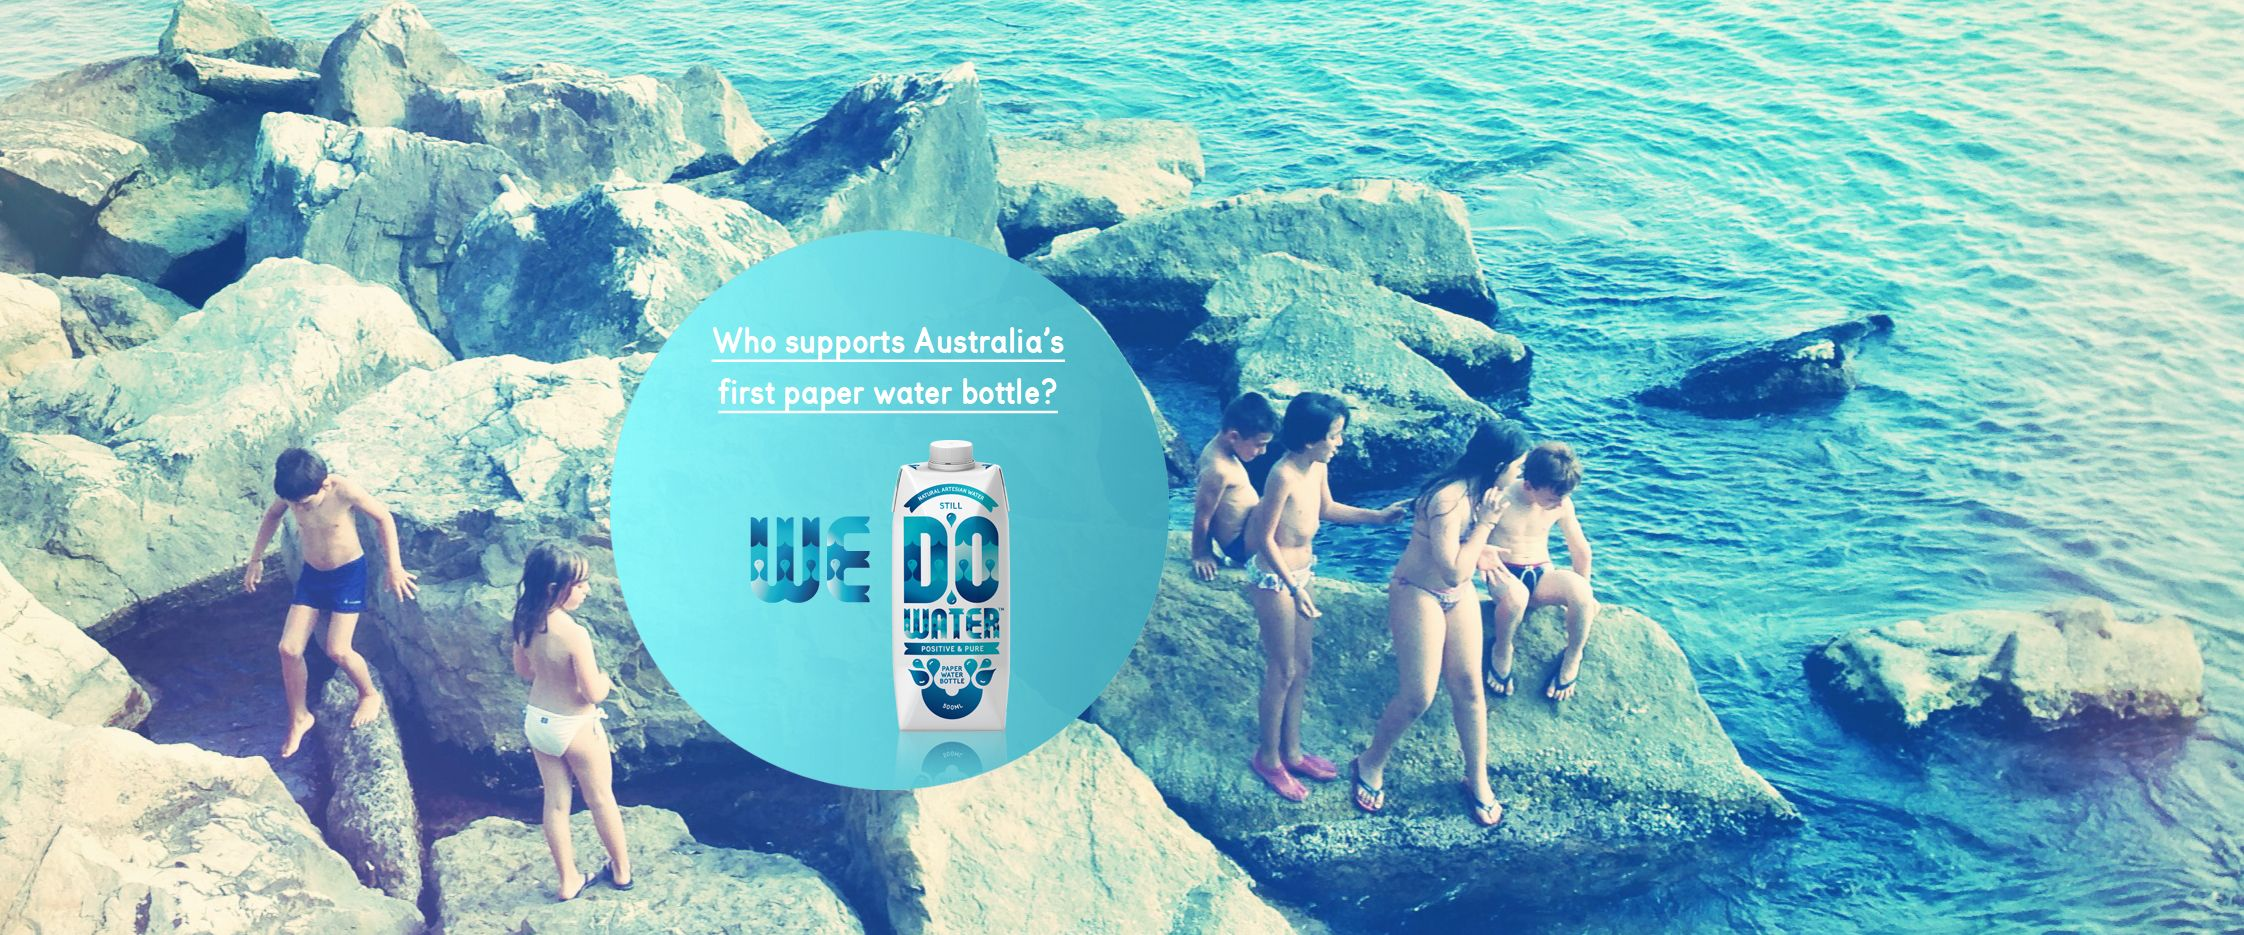 Do you support australias first paper water bottle i_do